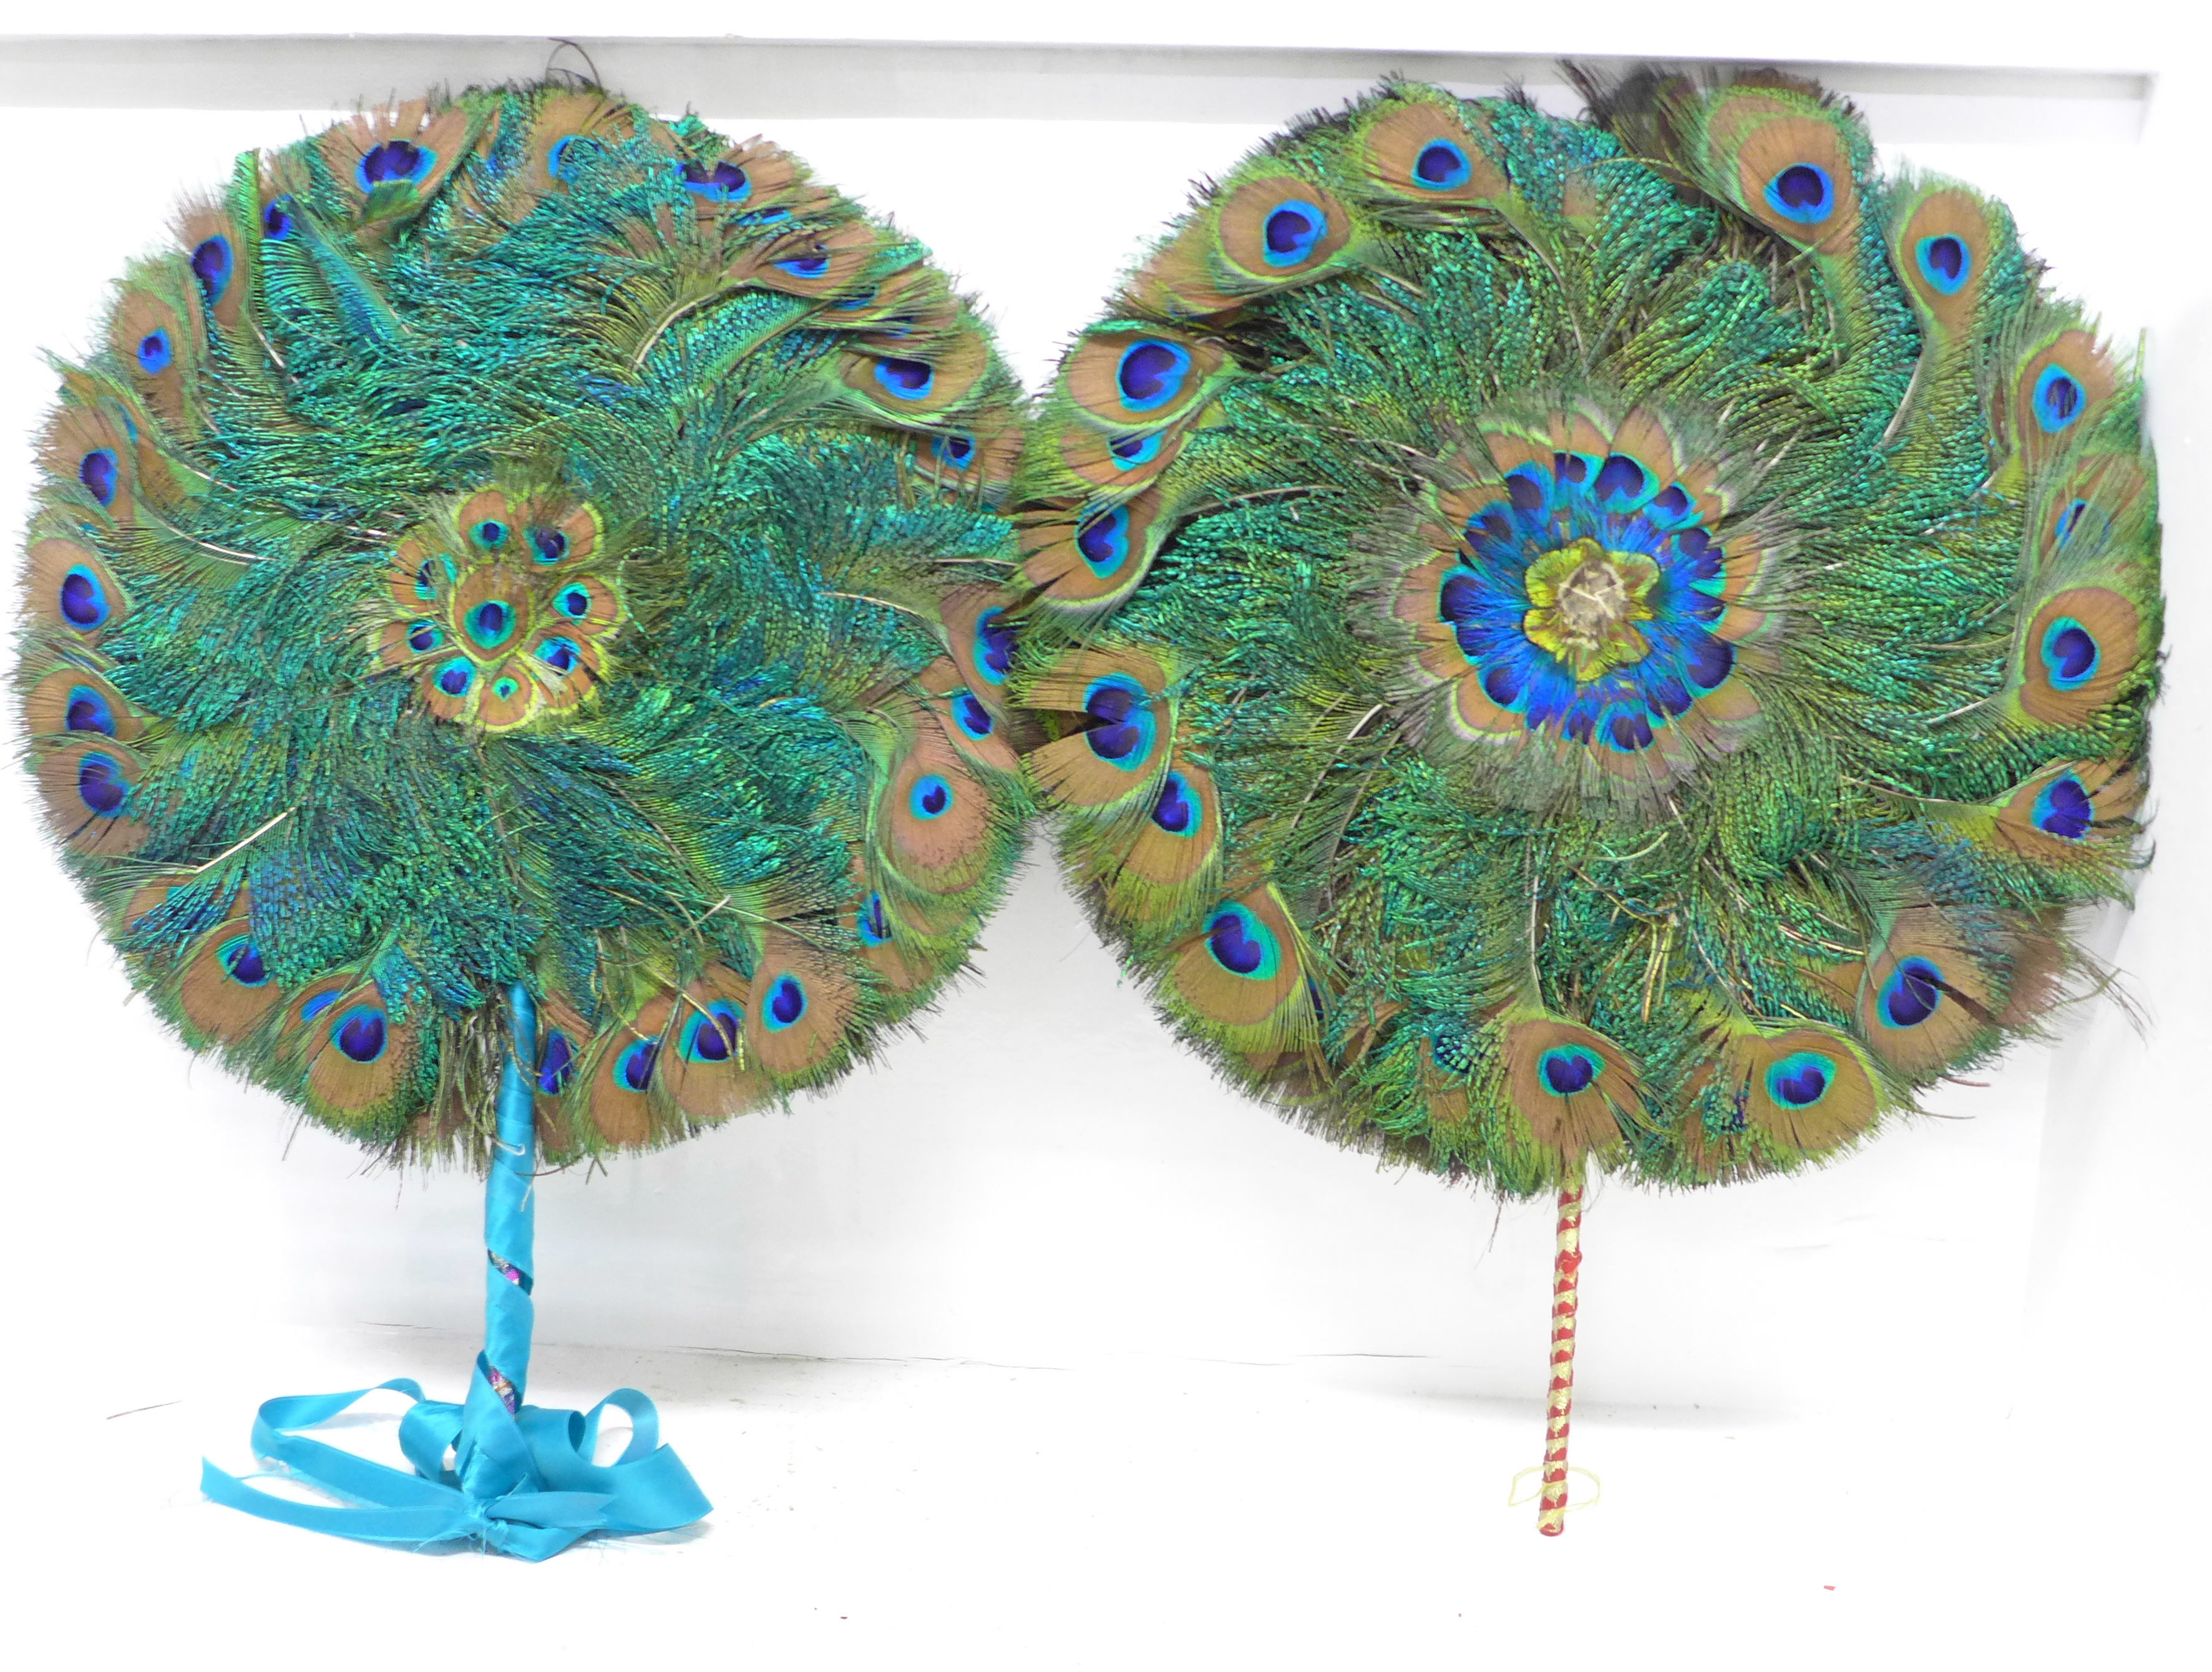 A pair of peacock feather fans